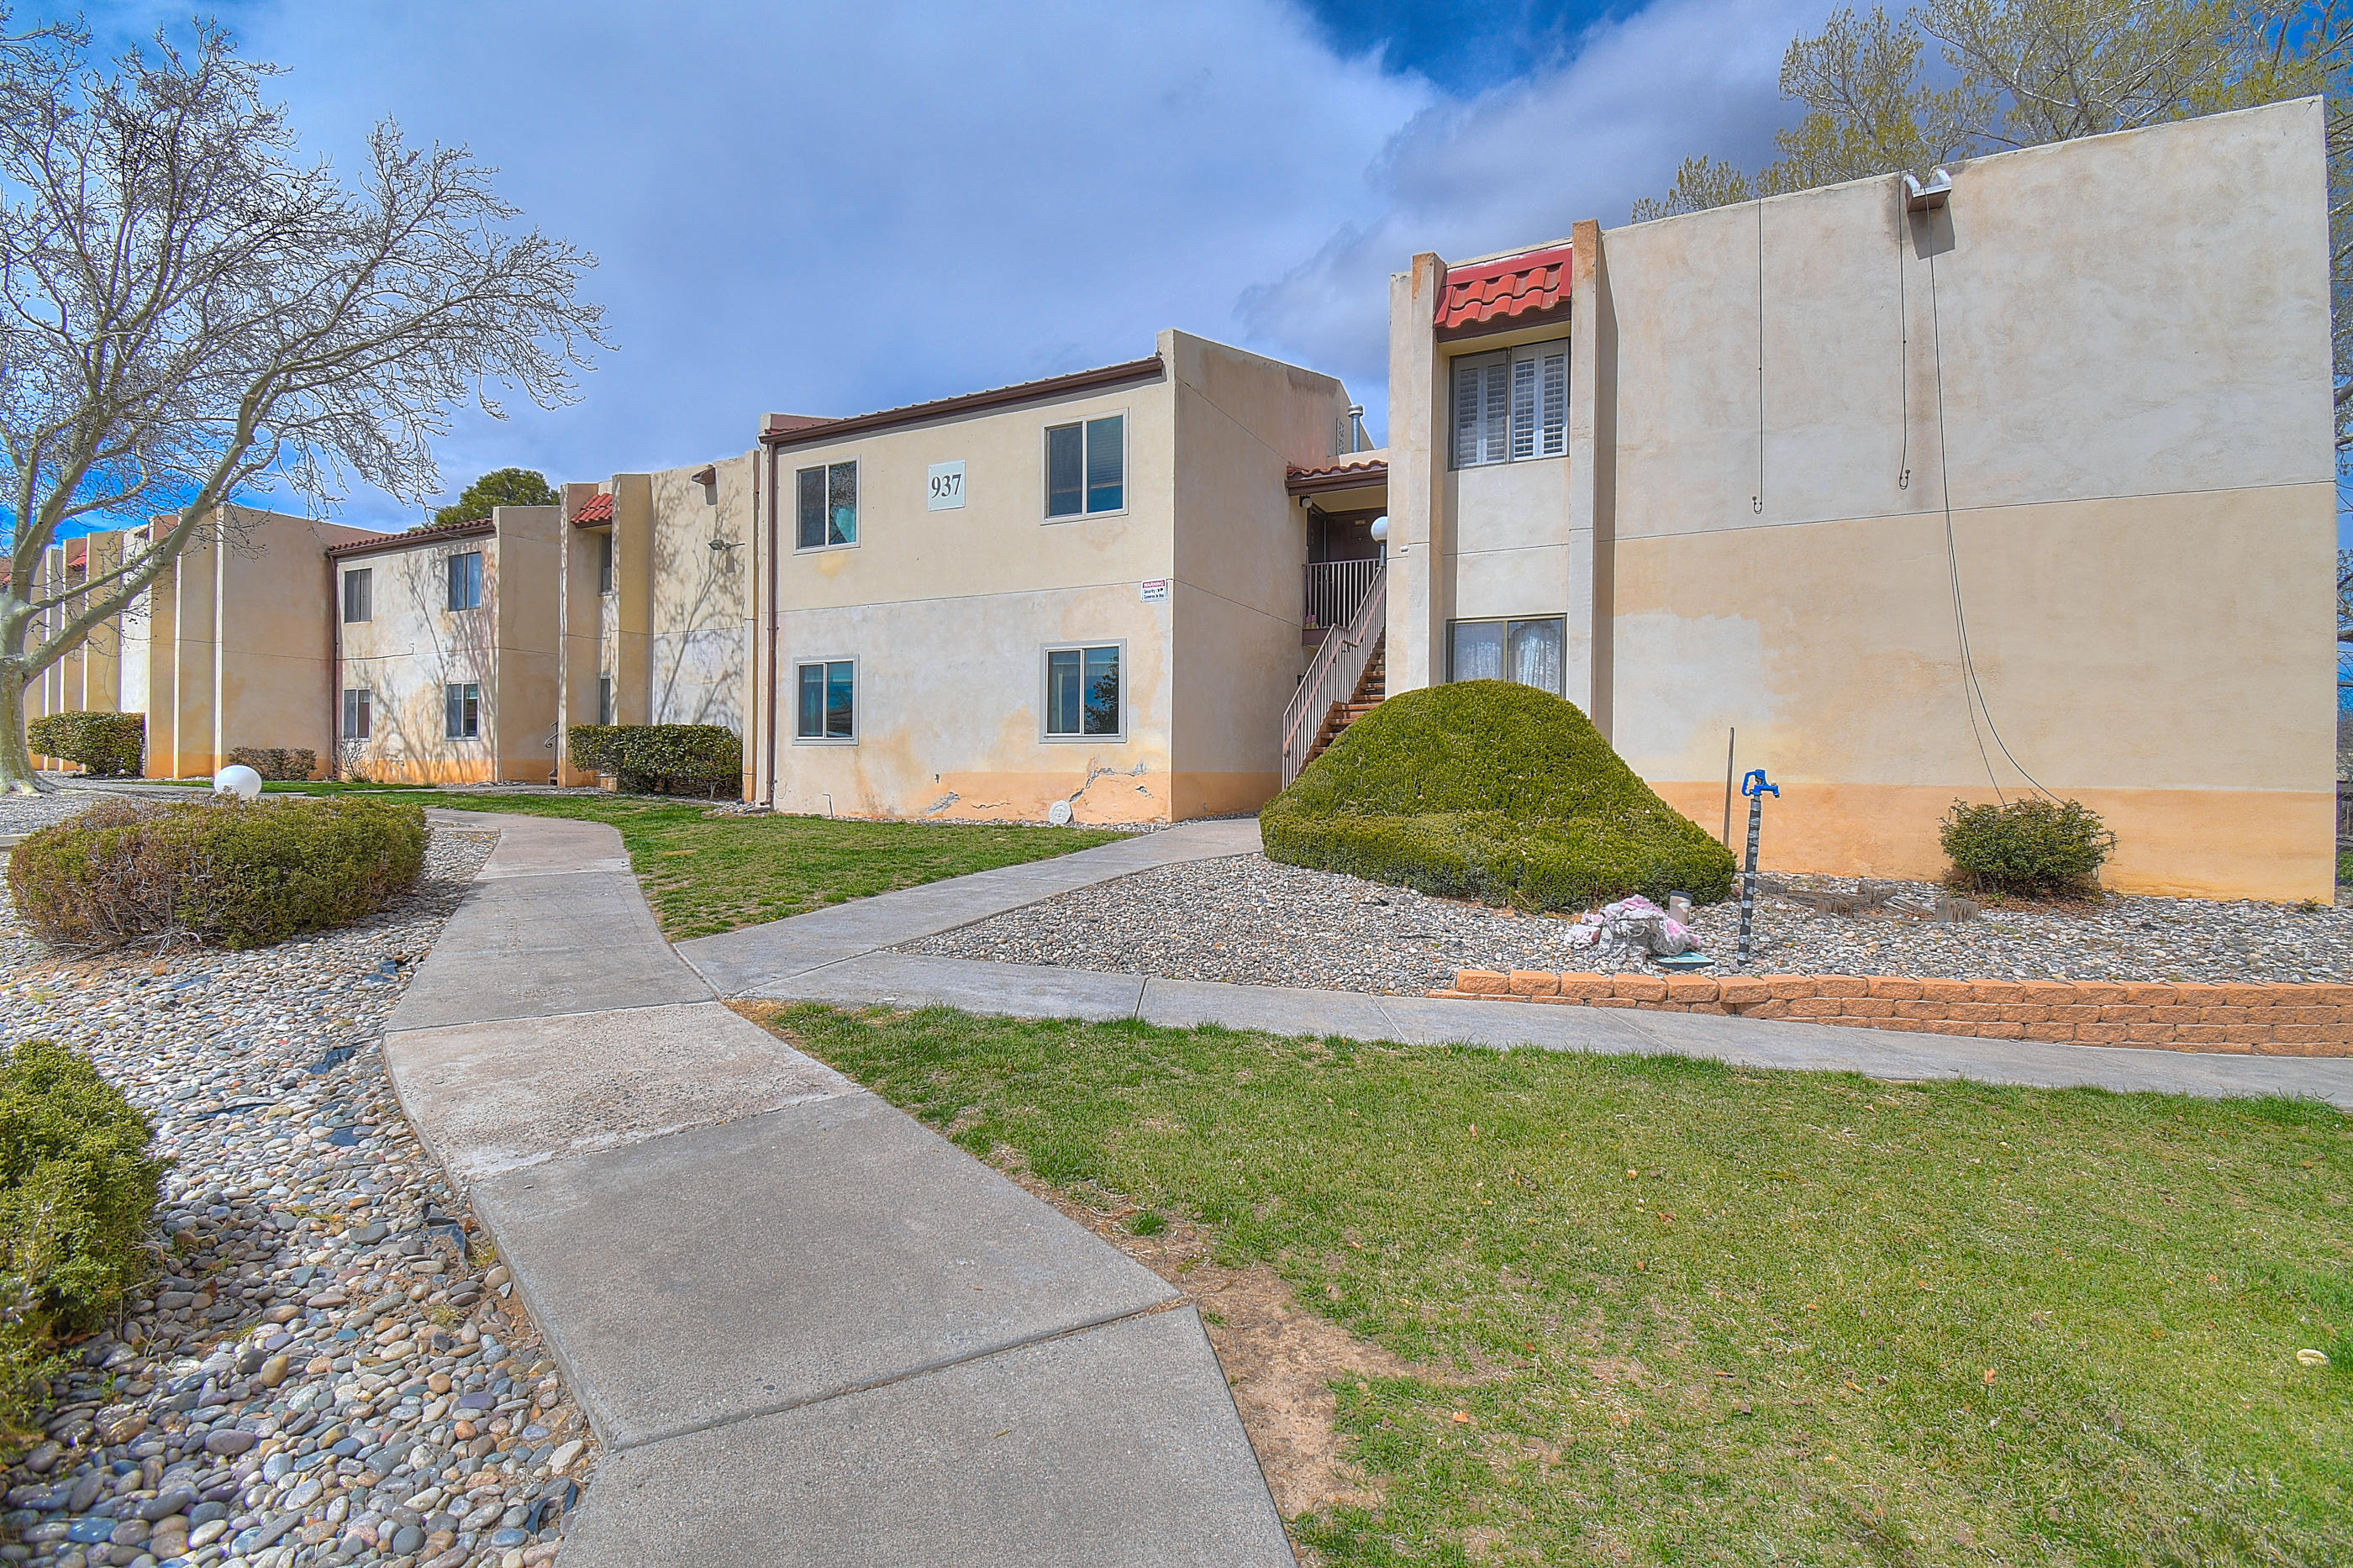 937 SE Country Club Drive, Rio Rancho, New Mexico